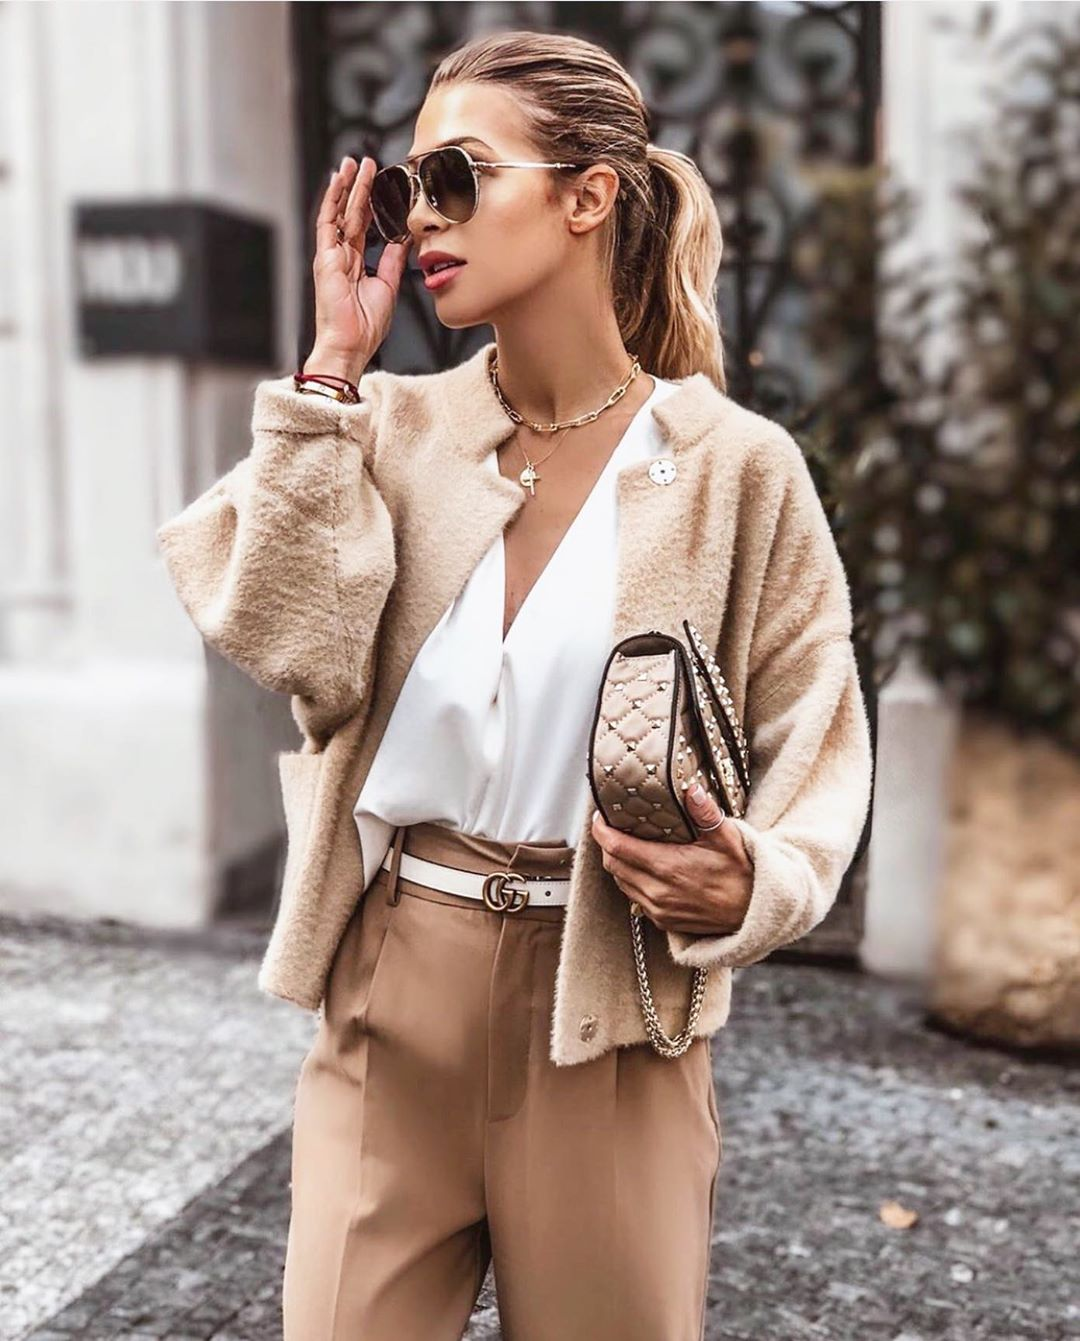 Keep it simple . It's lit #luxury#luxurylifestyle#beige#luxe#luxelife#classyoutfit#classy#classywomenn#gucci#valentino#vasecocky#itslit